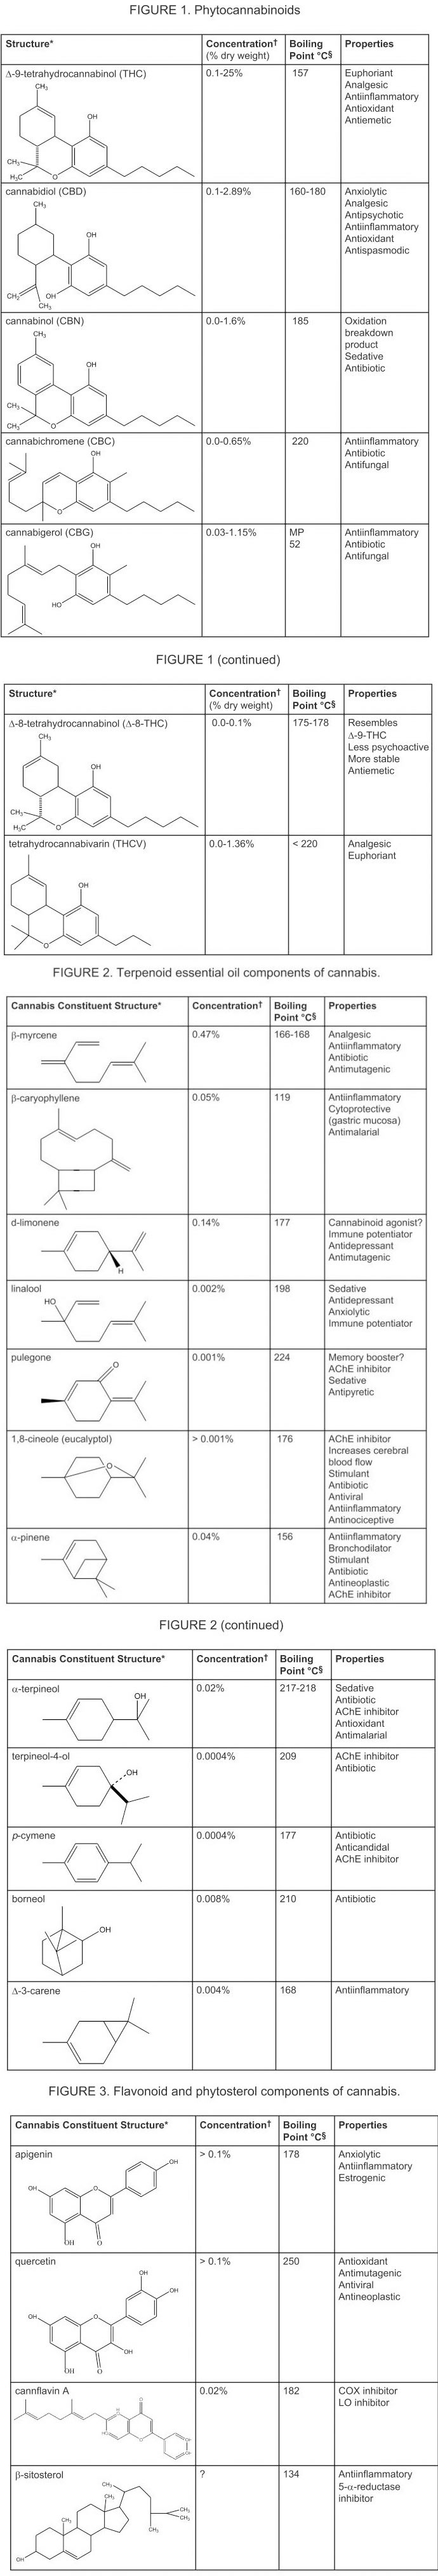 Cannabinoid facts thc cbd cbn cbc thcv cbg and other unique more information nvjuhfo Choice Image